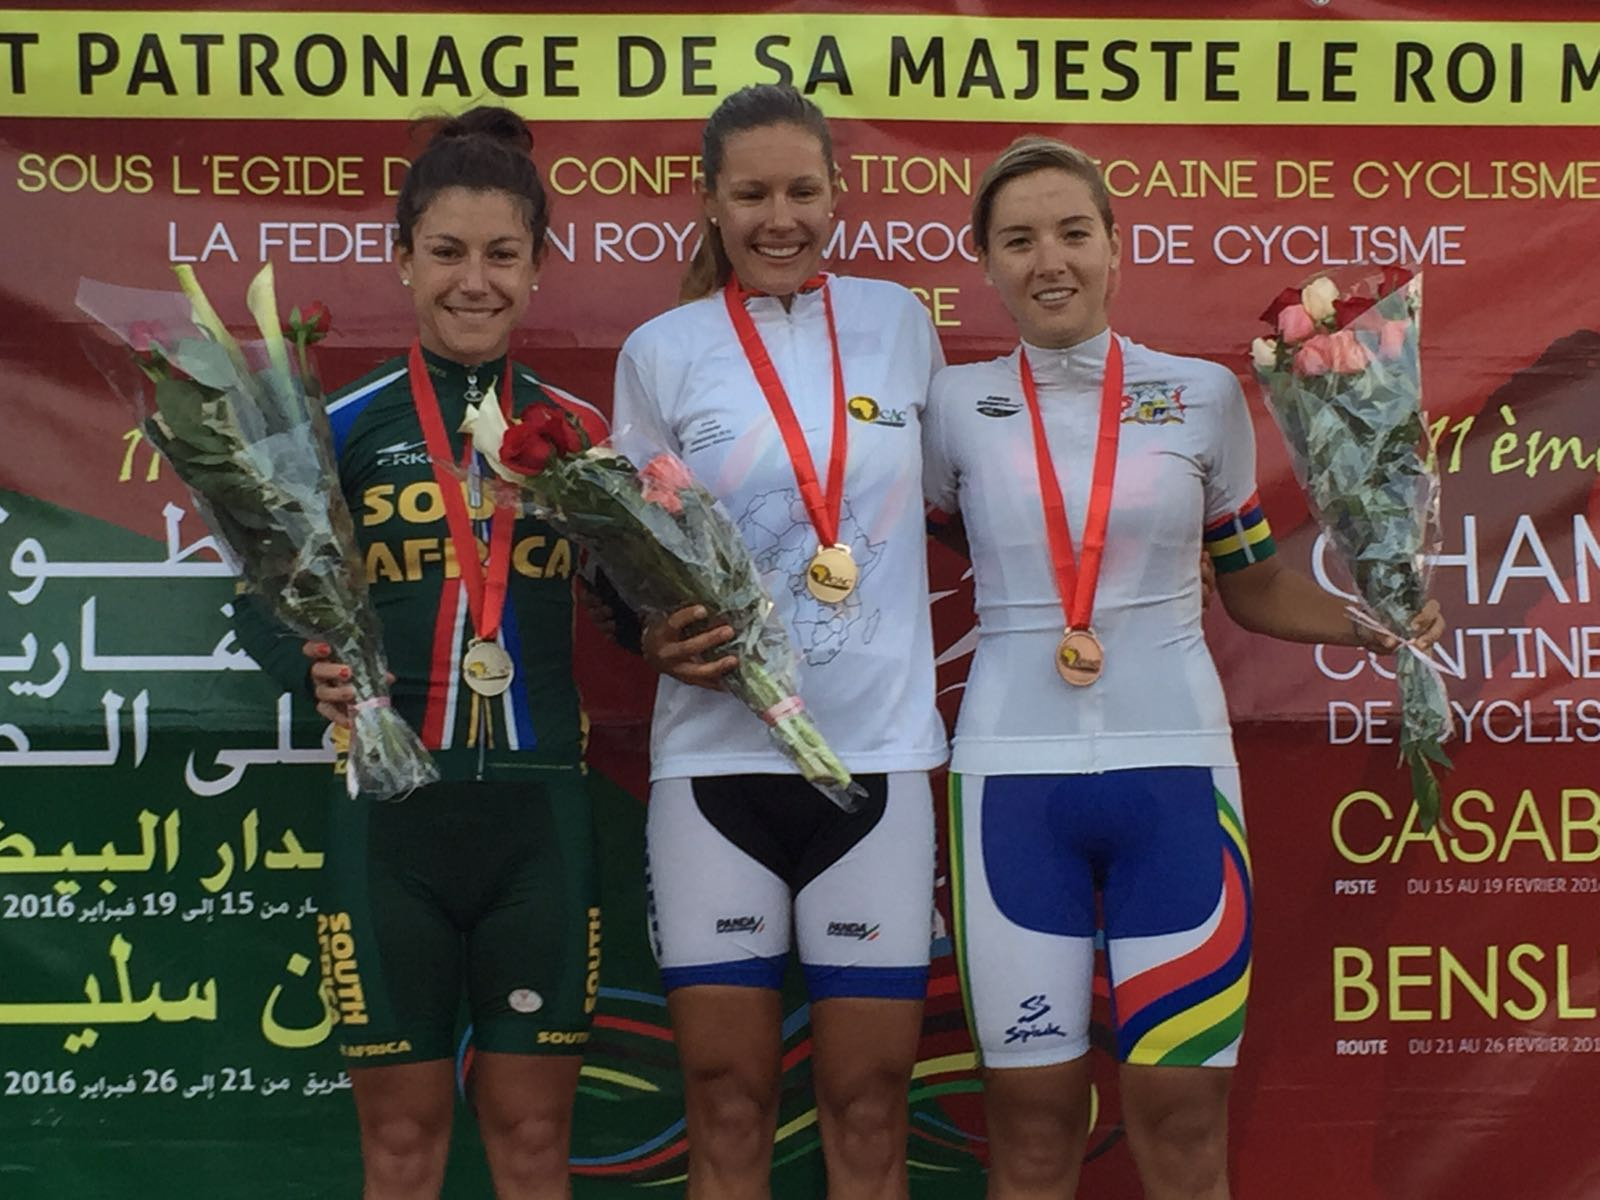 23-year-old Namibian Vera Adrian (centre) claimed a gold medal in the 120km Elite Women's Road Race at the 2016 CAC (African Cycling Confederation) Road Cycling Championships in Benslimane, Morocco, on Thursday 25 February. South African National Champion An-li Kachelhoffer (left) finished second and Mauritian Kimberley Le Court (right) finished third. Photo: supplied.